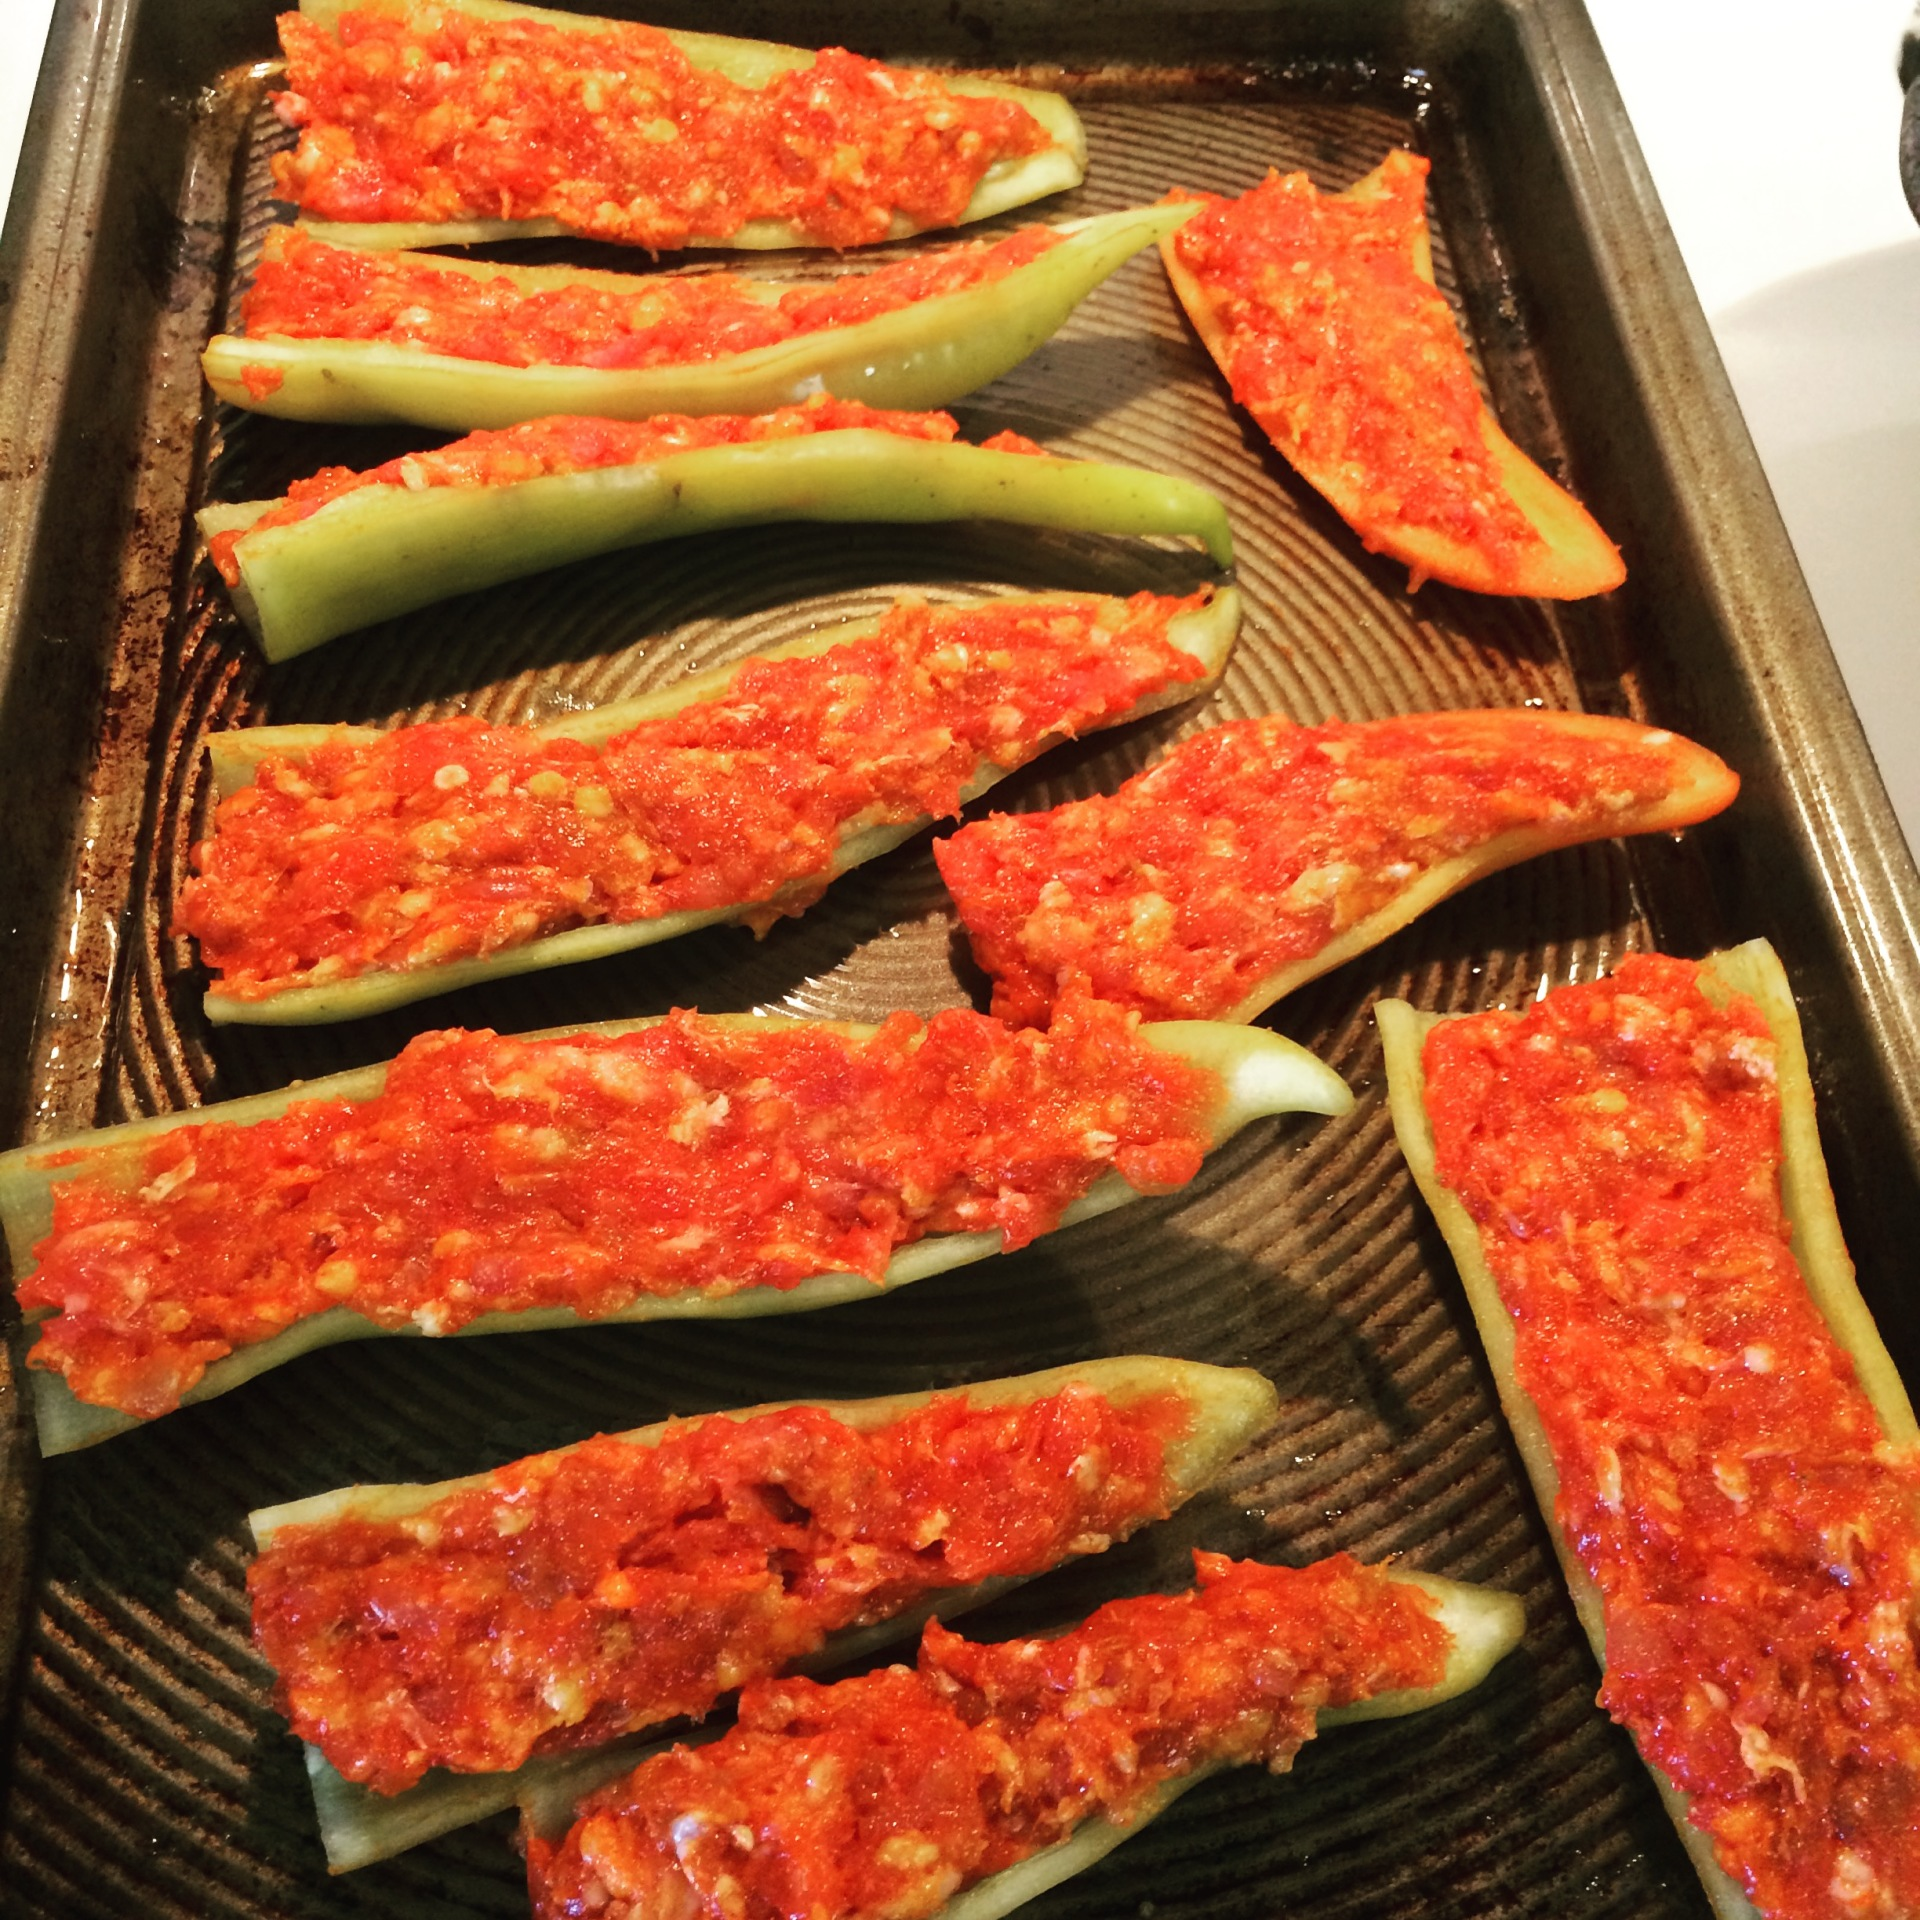 Restaurant Expose:  Stuffed Banana Peppers